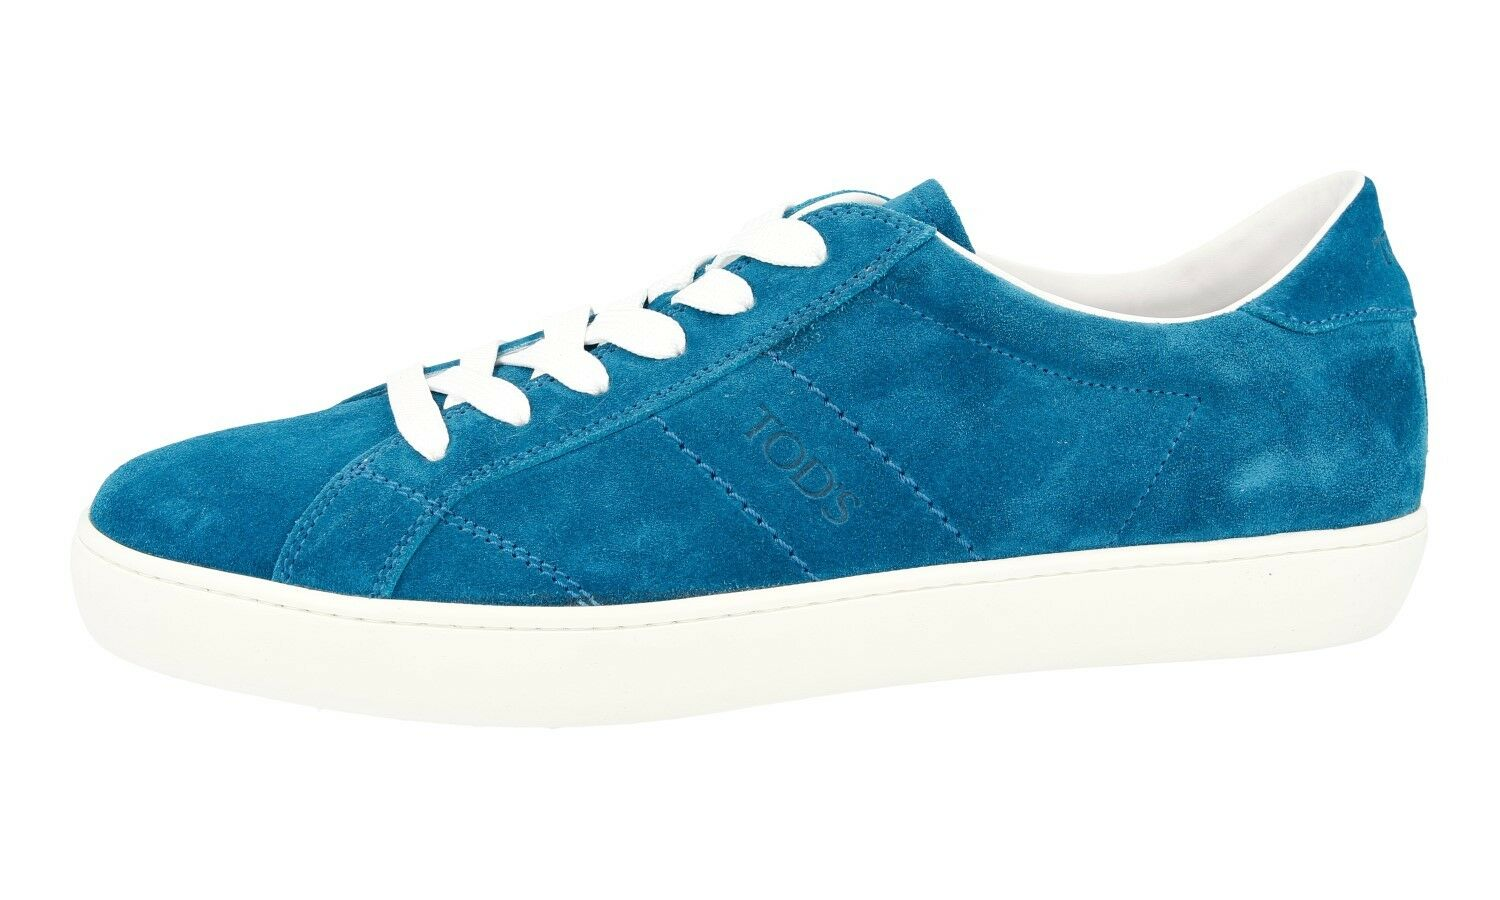 AUTHENTIC 9 TODS SNEAKERS SHOES ALLACIATO TURQUOISE NEW   9 AUTHENTIC EU 42 42,5 c78c26